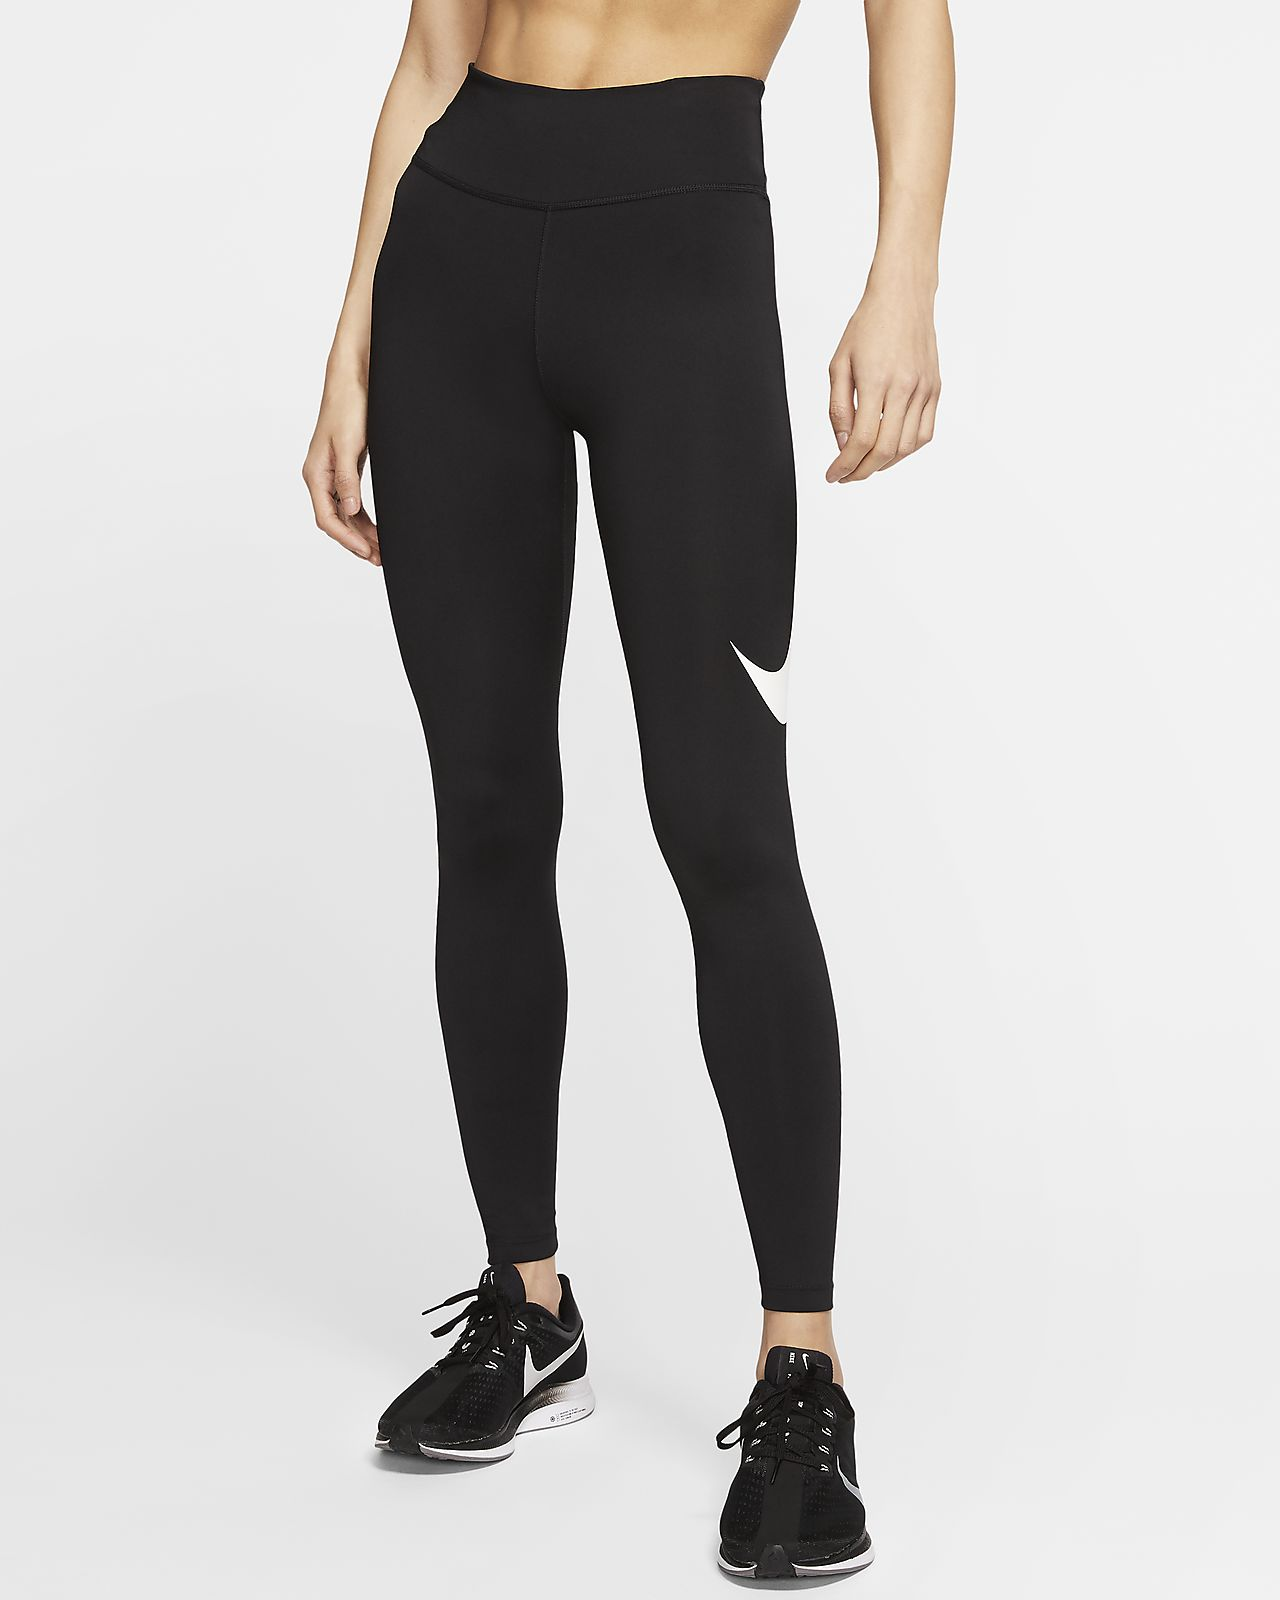 Nike Women's Mid-Rise 7/8 Running Leggings